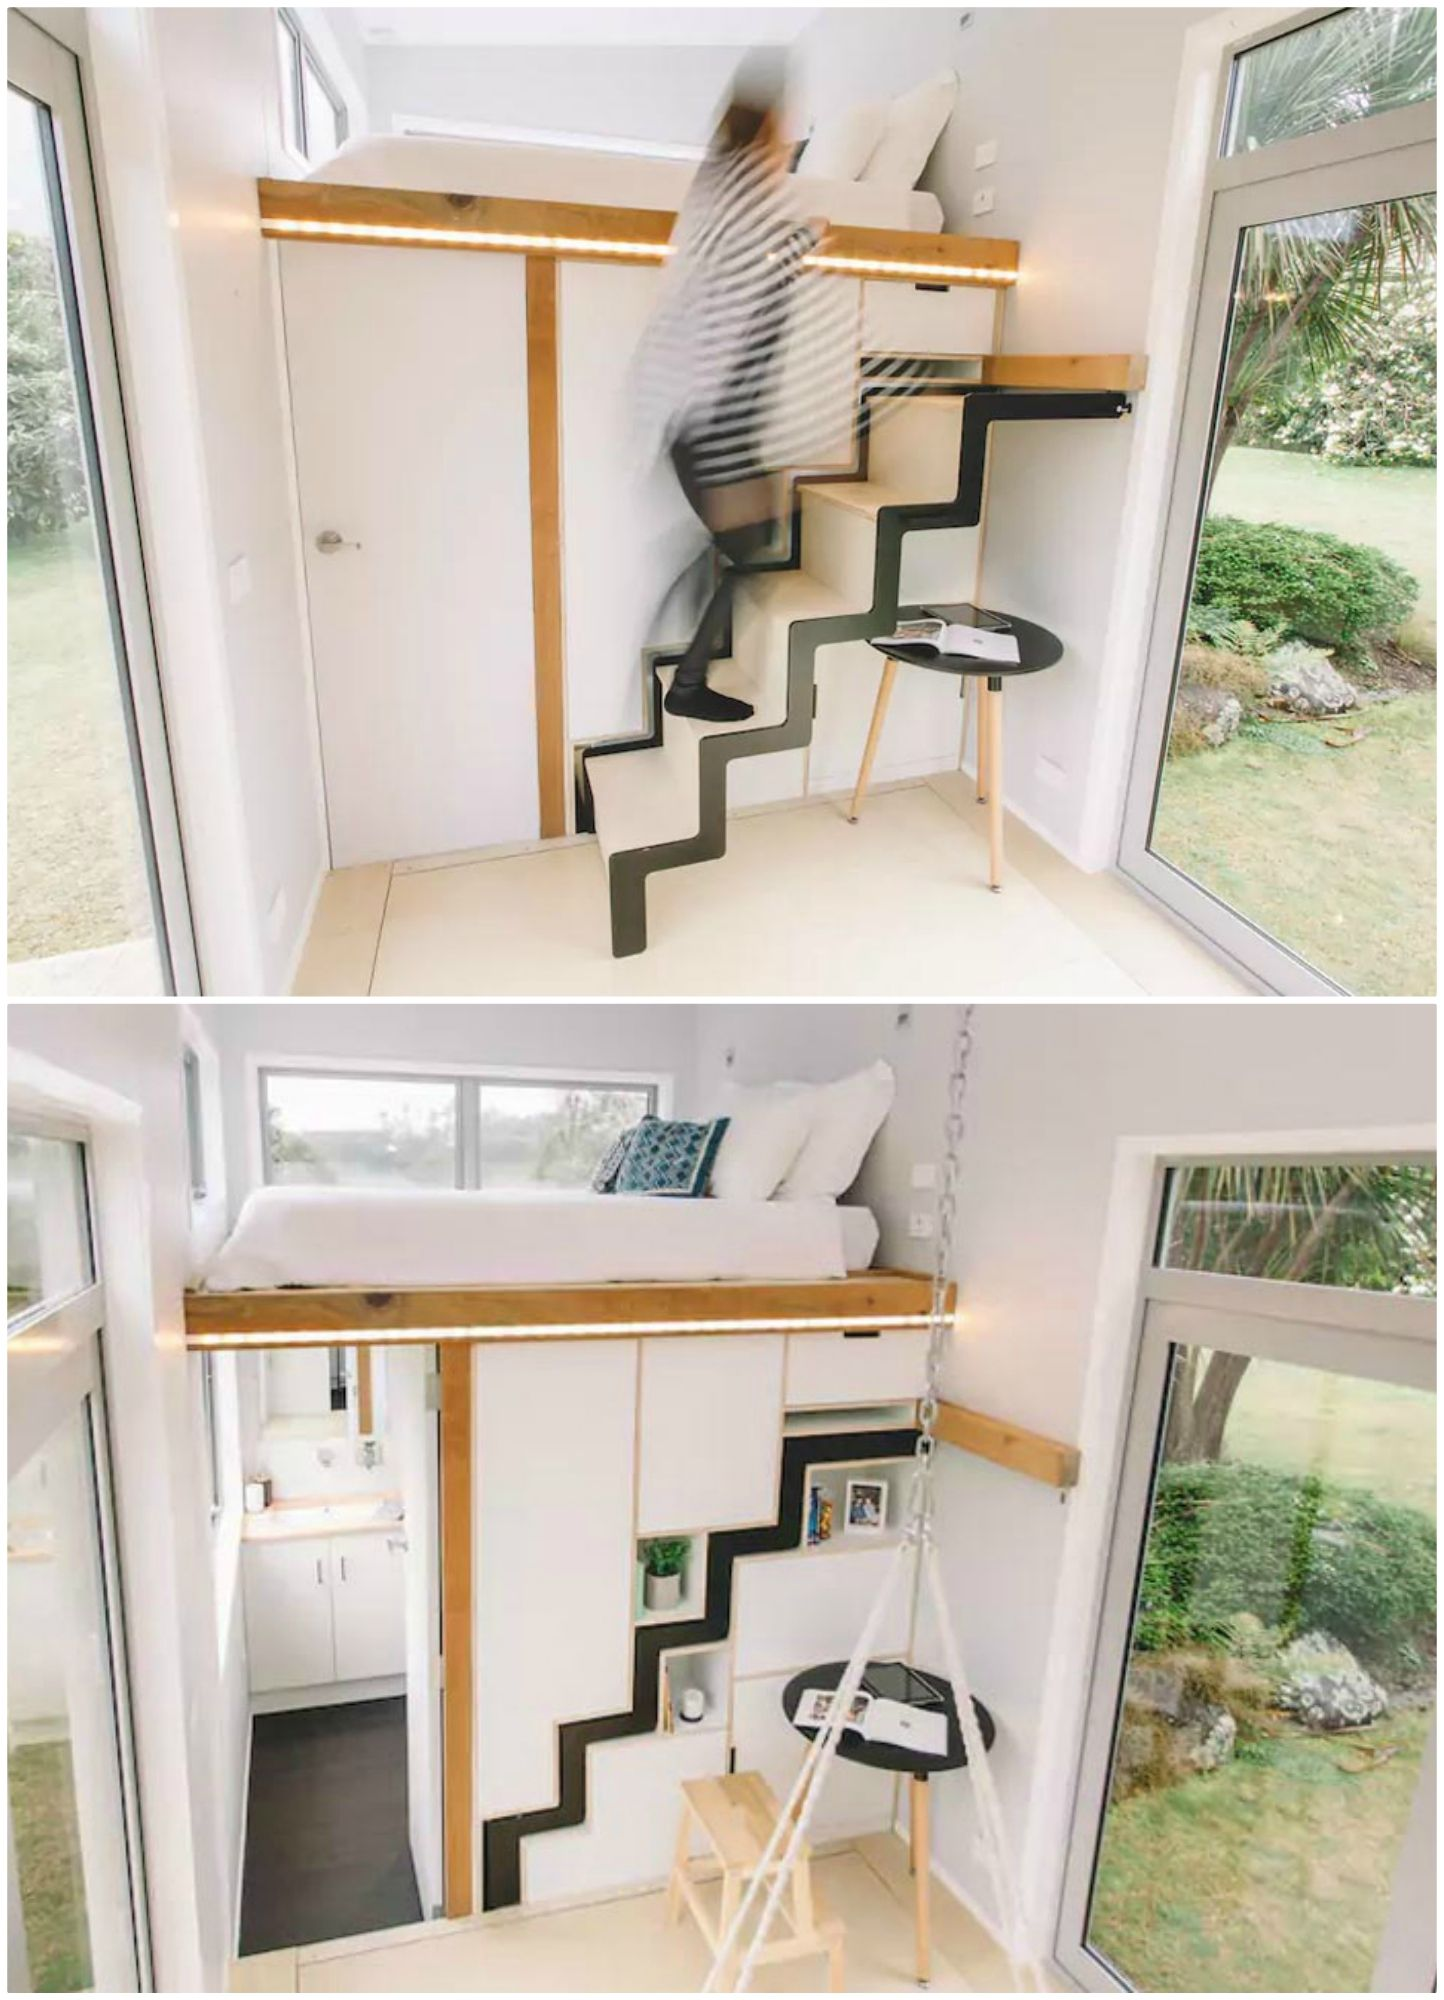 The Millennial tiny house features an ingenious retractable ... on tiny homes with staircases, tiny art, tiny prefab homes, tiny bedroom, tiny log homes, tiny homes inside and outside, tiny modular homes, small box type house designs, tiny compact homes, tiny plans, tiny fashion, tiny custom homes, loft small house designs, tiny room design ideas, tiny interior design, tiny kit homes, tiny house, tiny portable homes, mini bungalow house plans designs, tiny books,